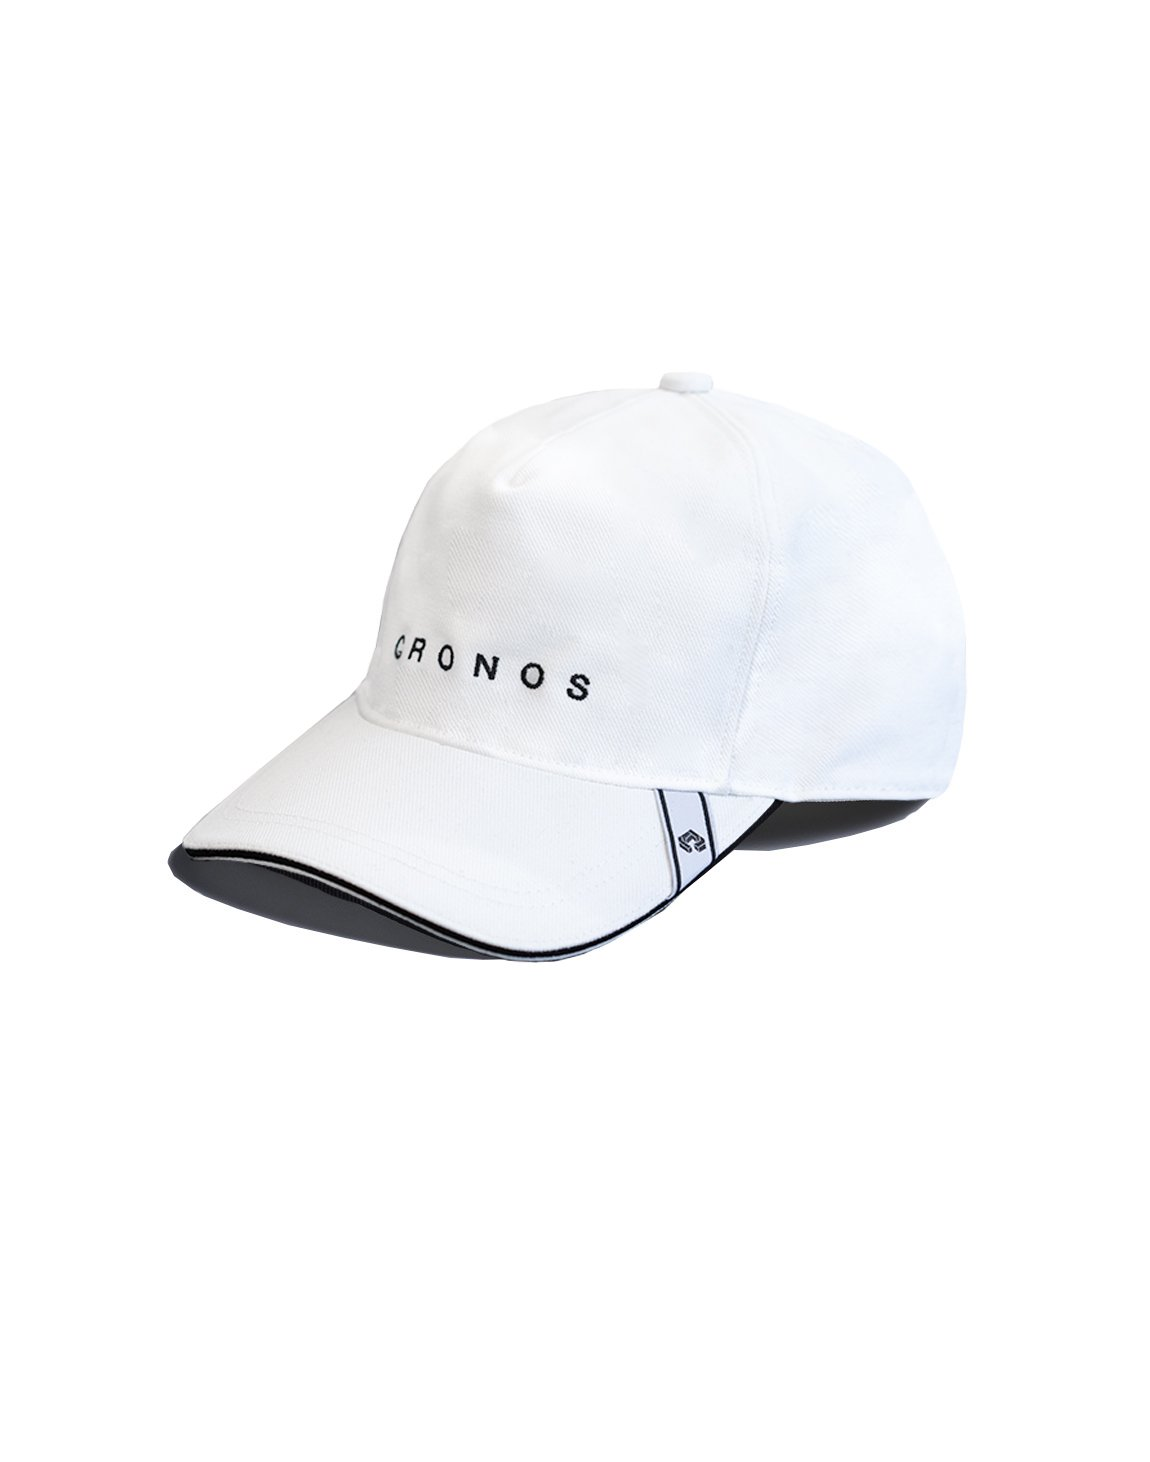 <img class='new_mark_img1' src='https://img.shop-pro.jp/img/new/icons1.gif' style='border:none;display:inline;margin:0px;padding:0px;width:auto;' />CRONOS FONT LOGO CAP【WHITE】